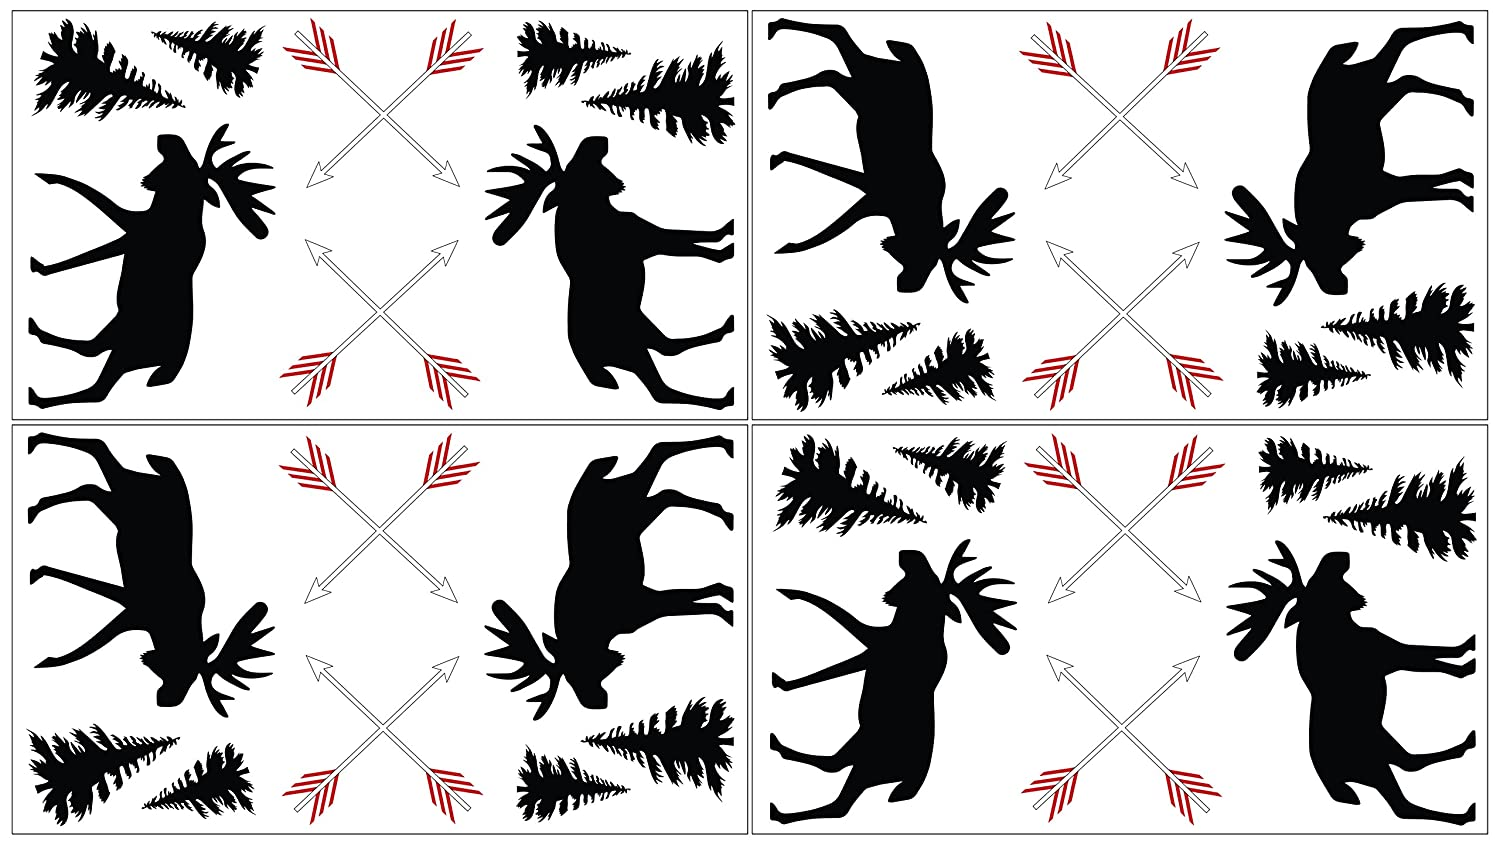 Grey, Black and Red Woodland Moose and Arrow Wall Decal Stickers for Rustic Patch Collection by Sweet Jojo Designs - Set of 4 Sheets